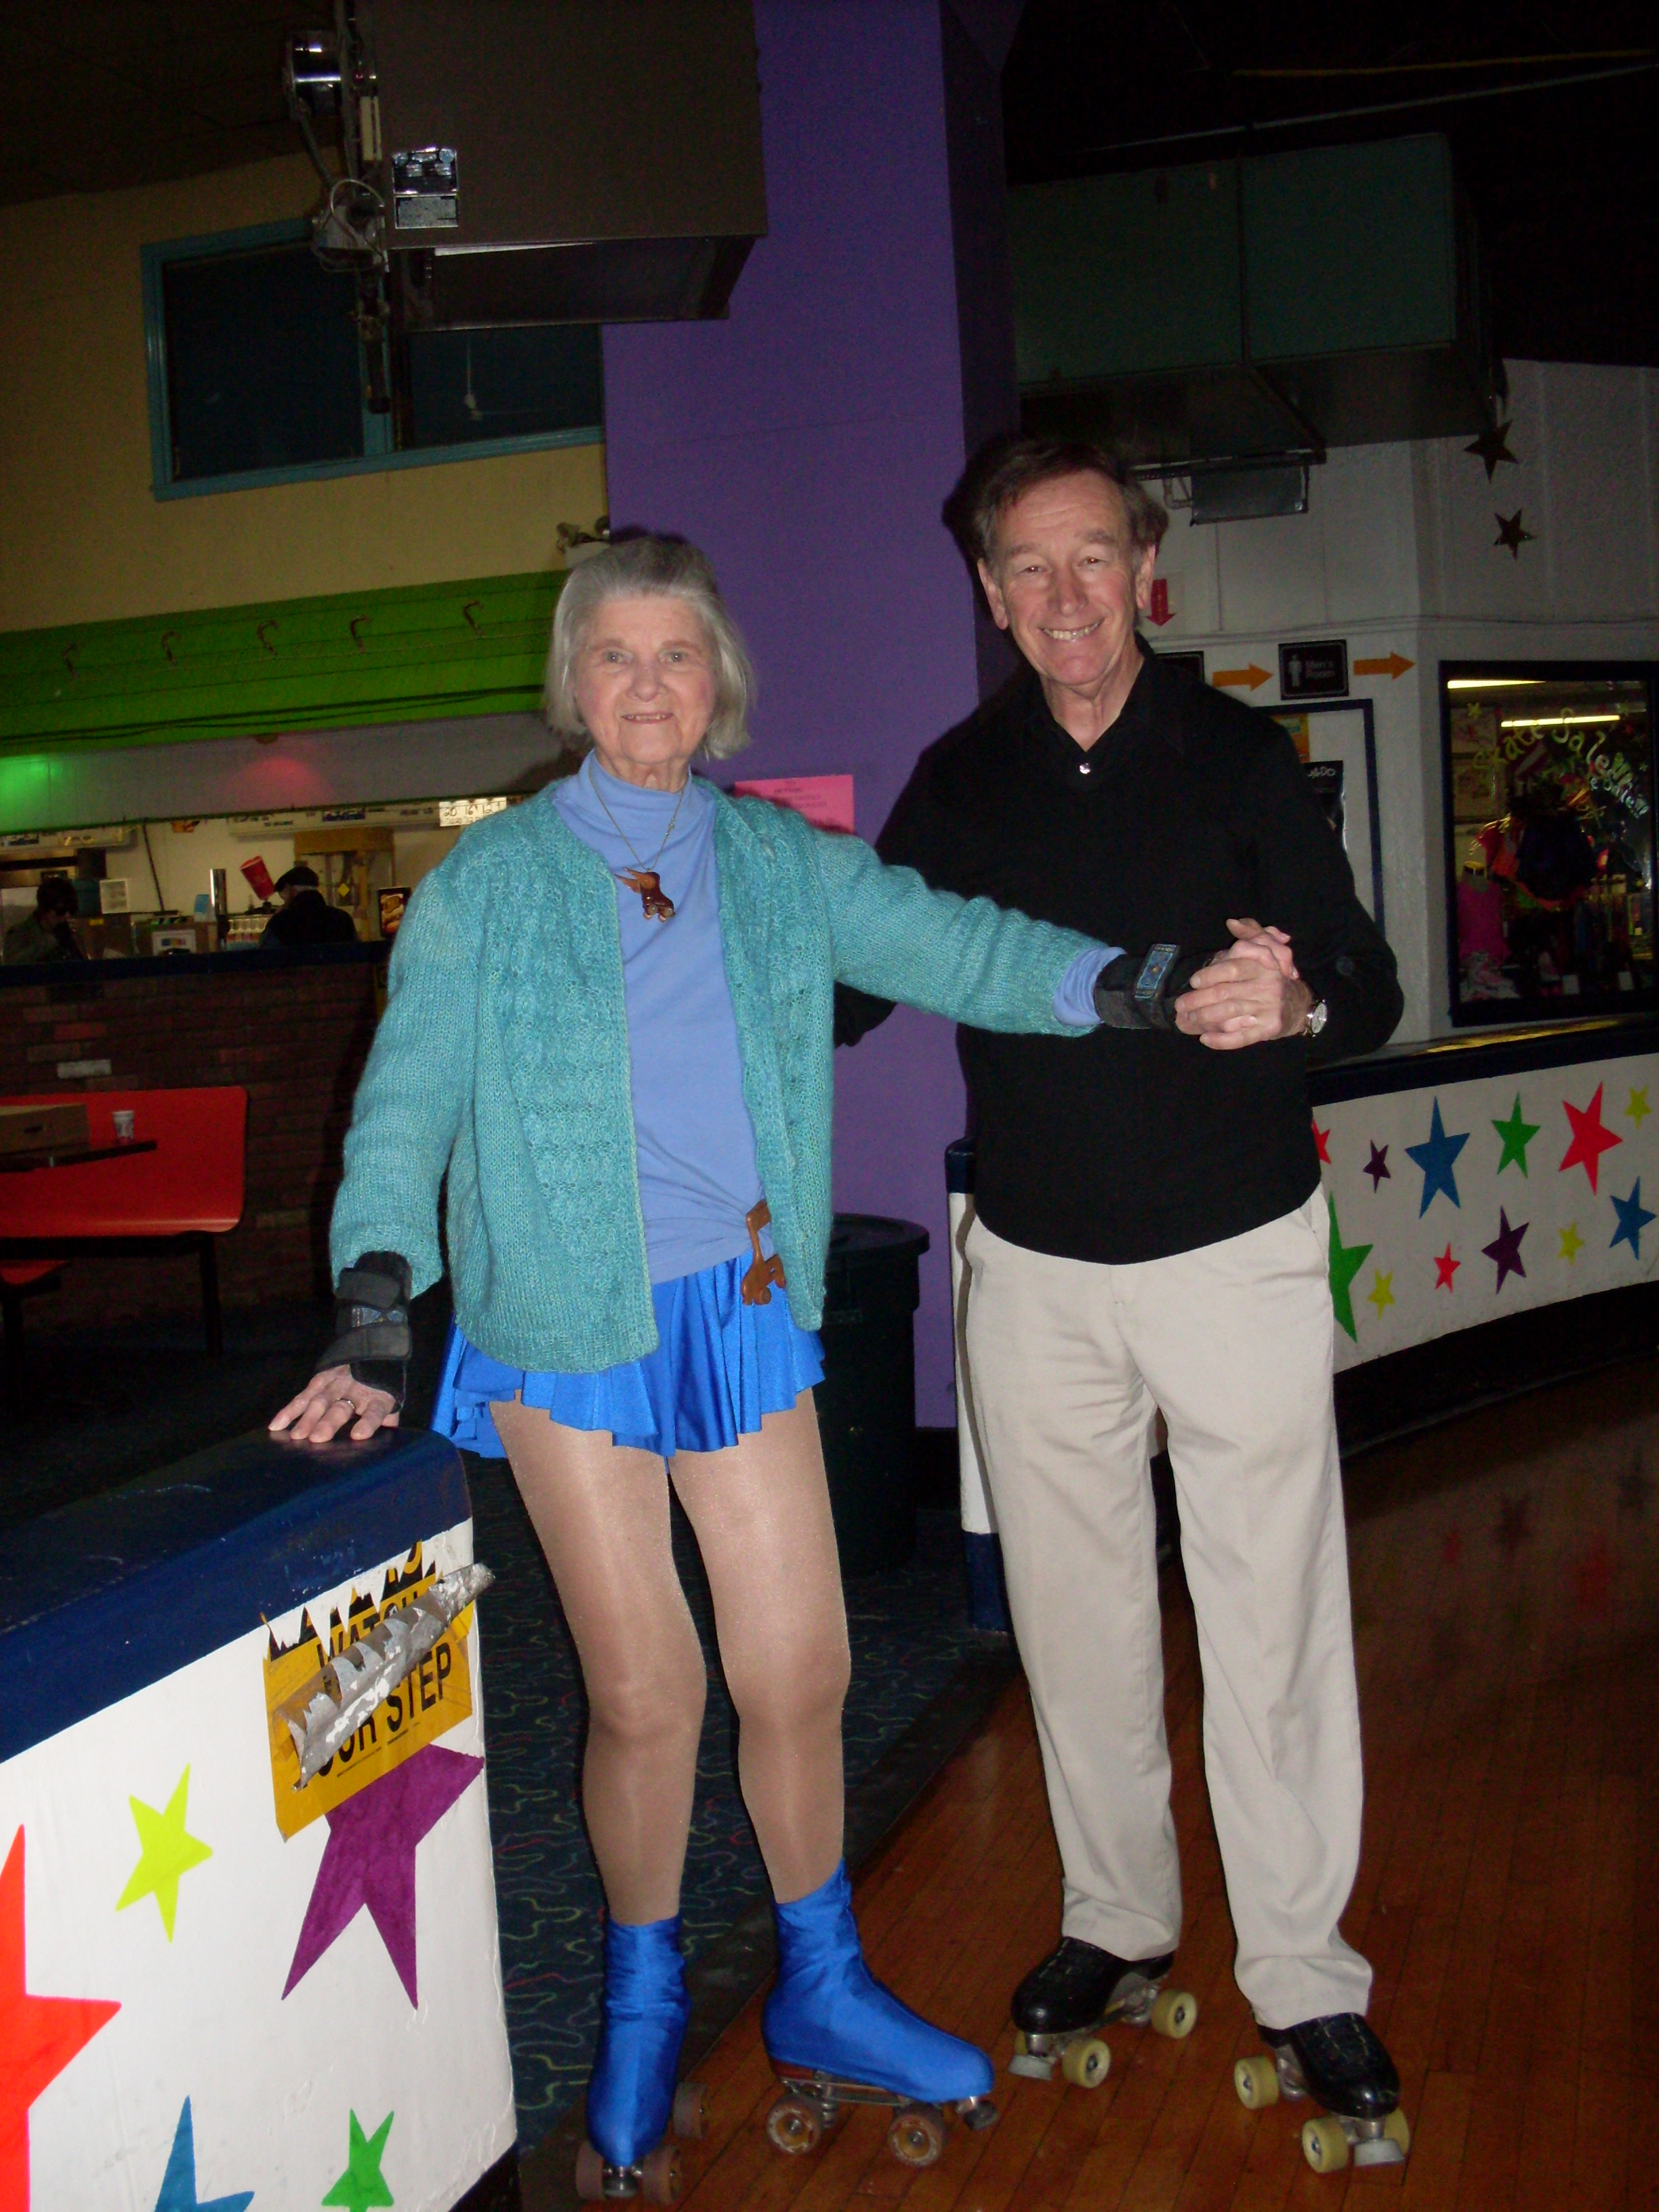 Roller skating rink woodbridge nj - Carrie Calendriello Age 92 And Chester Fried Age 66 Are Inspirations On Roller Skates